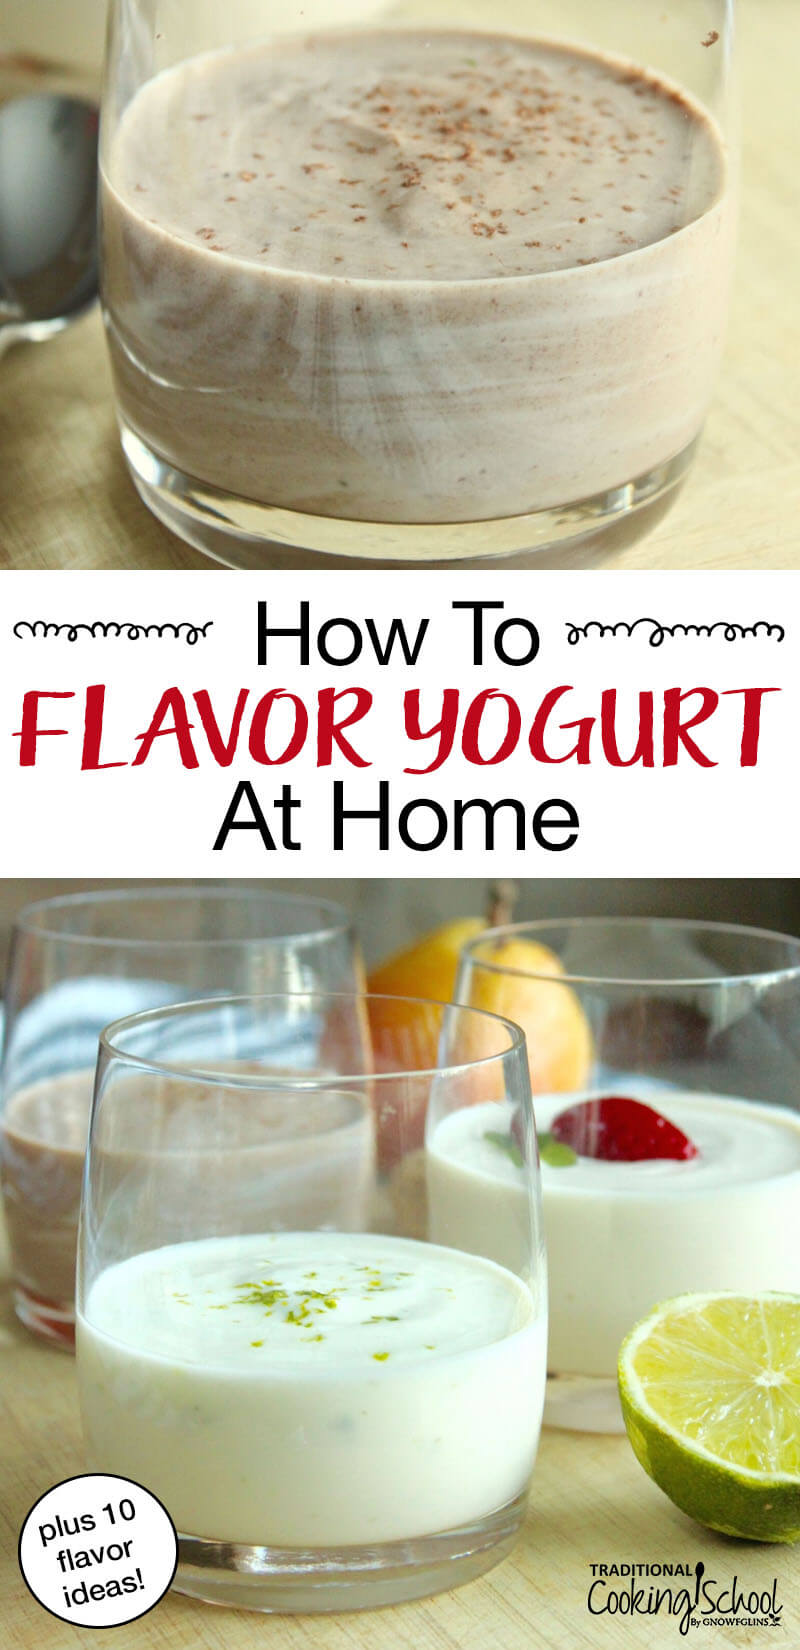 How To Flavor Yogurt At Home + 10 Flavor Ideas! Have you ever looked at the ingredients on a tub of flavored yogurt? Sugar, fructose, corn syrup, flavorings, colorings... A bowl of ice cream often contains less sugar than a similar serving of flavored yogurt! The good news? It's easy to make homemade, delicious and healthy flavored yogurt yourself!Here are 10 of our favorite flavors to get you started. #yogurt #homemade #recipes #breakfast #benefits #instantpot